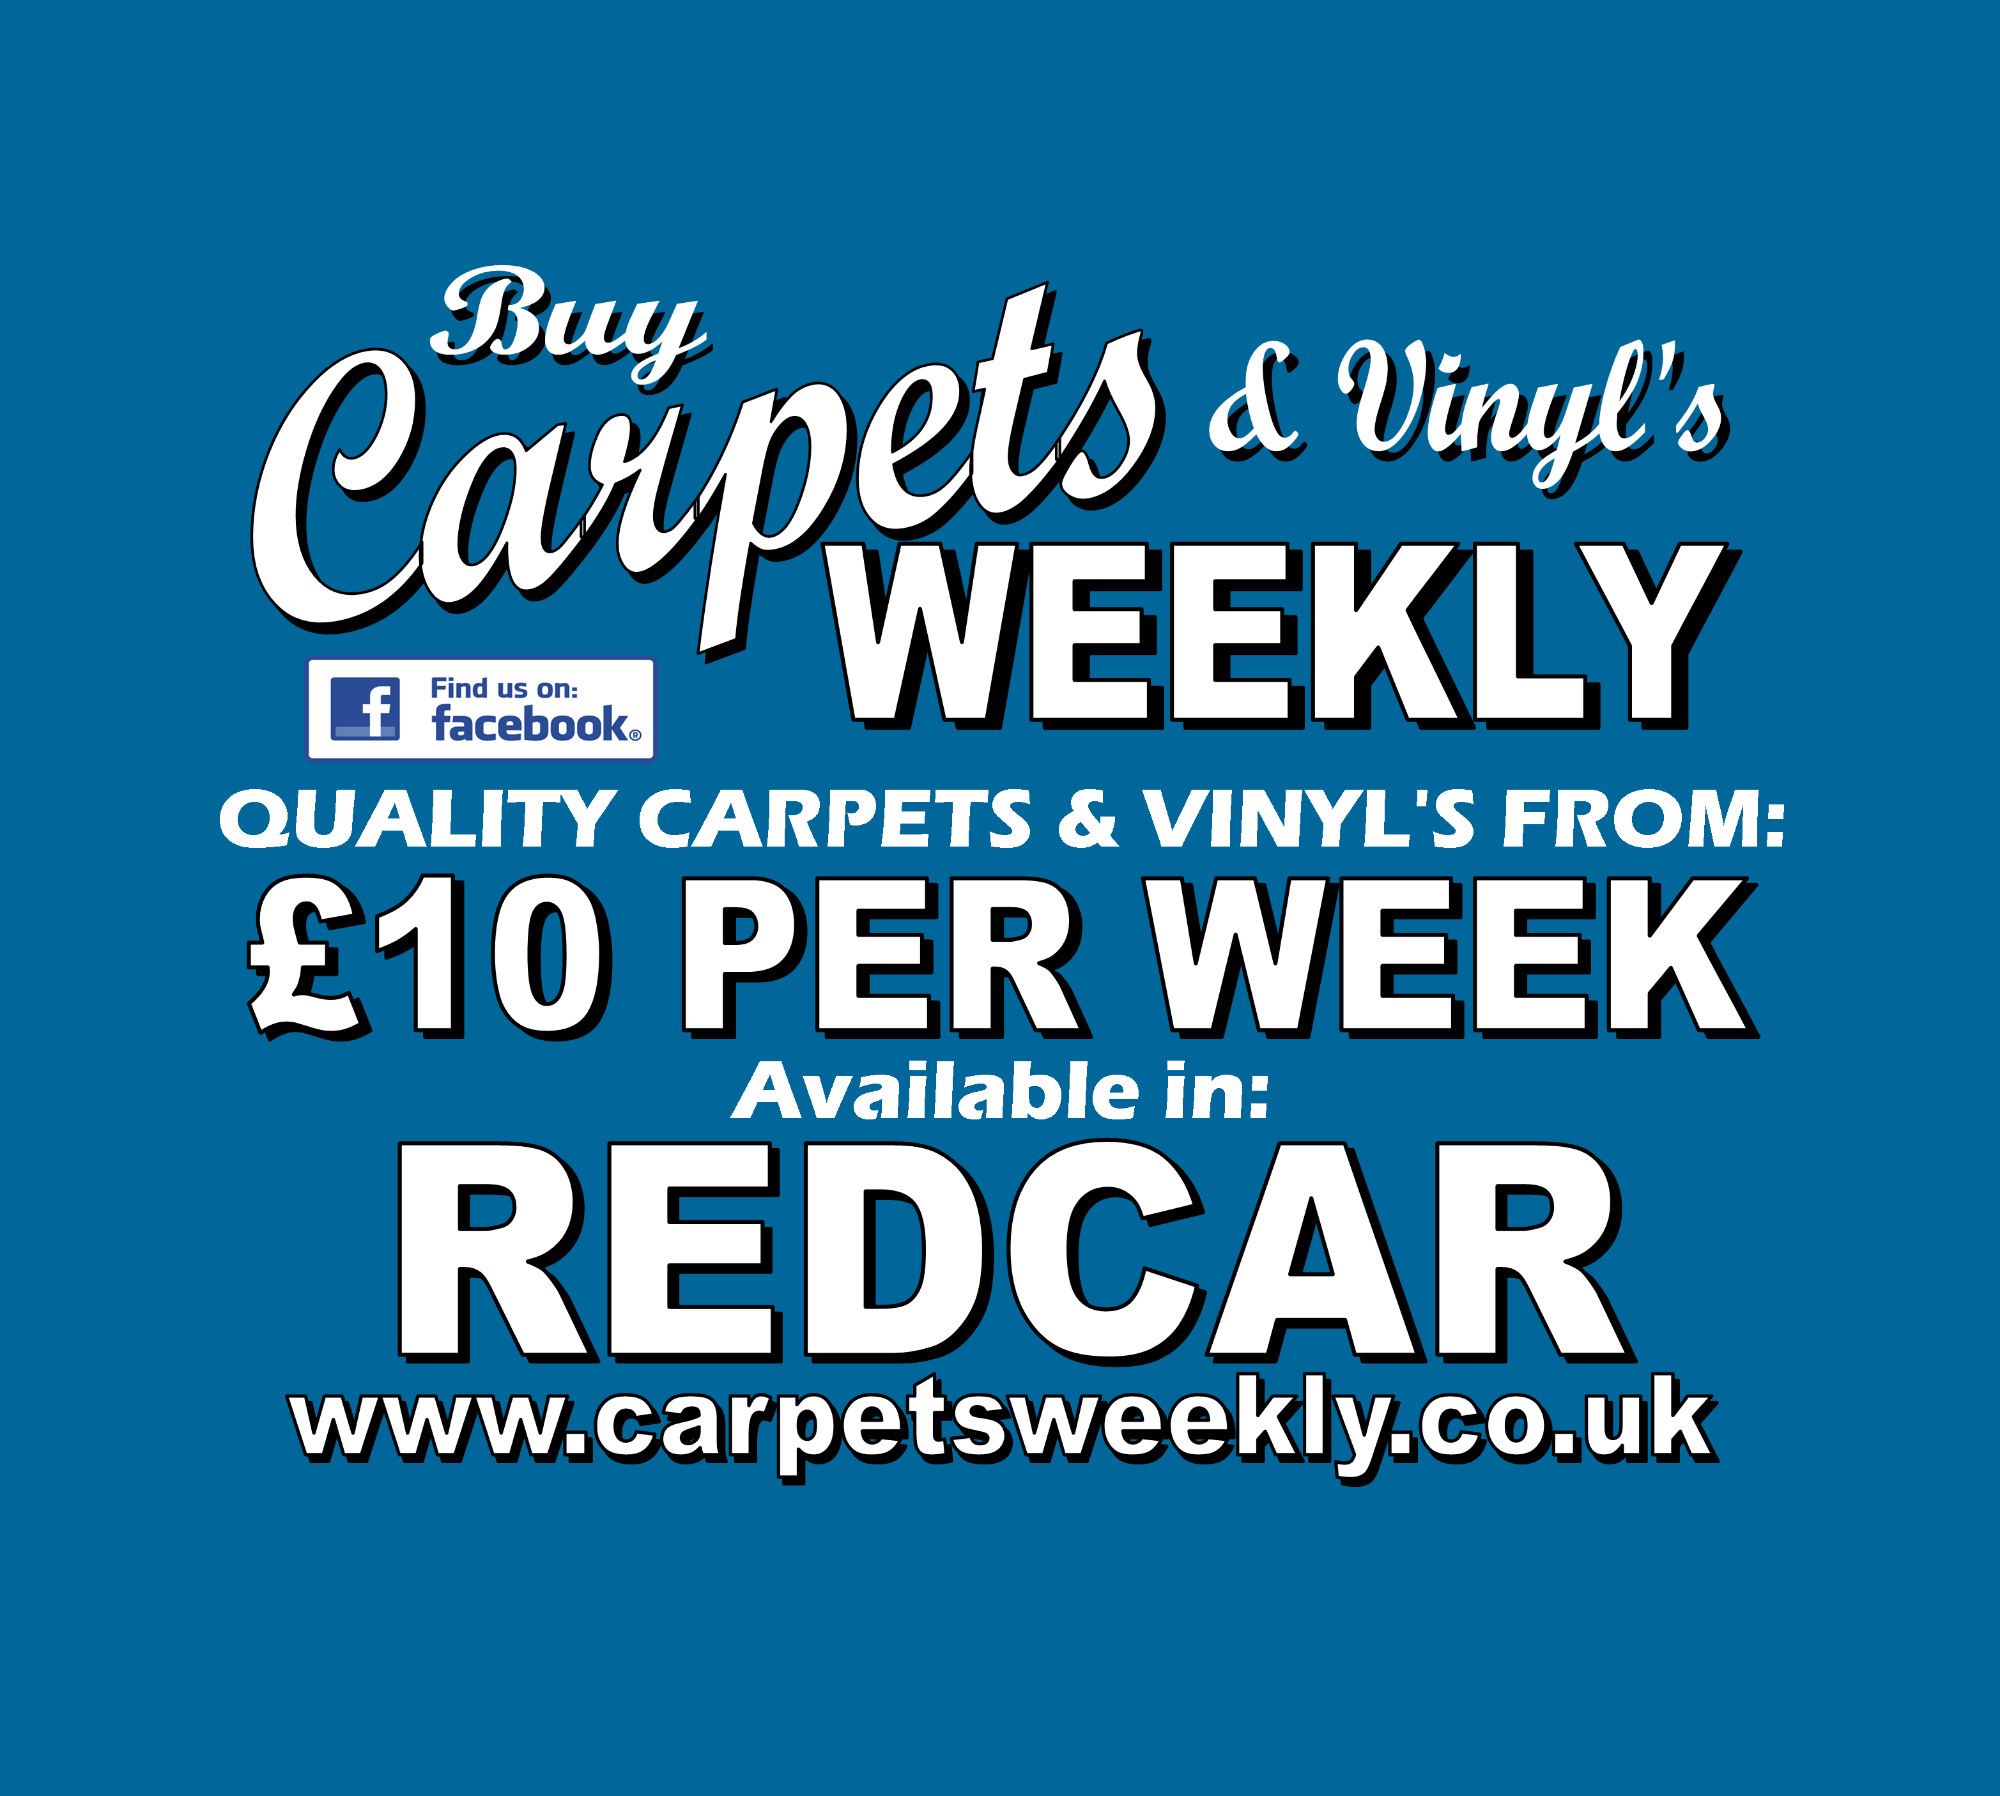 Carpets Weekly available in Redcar